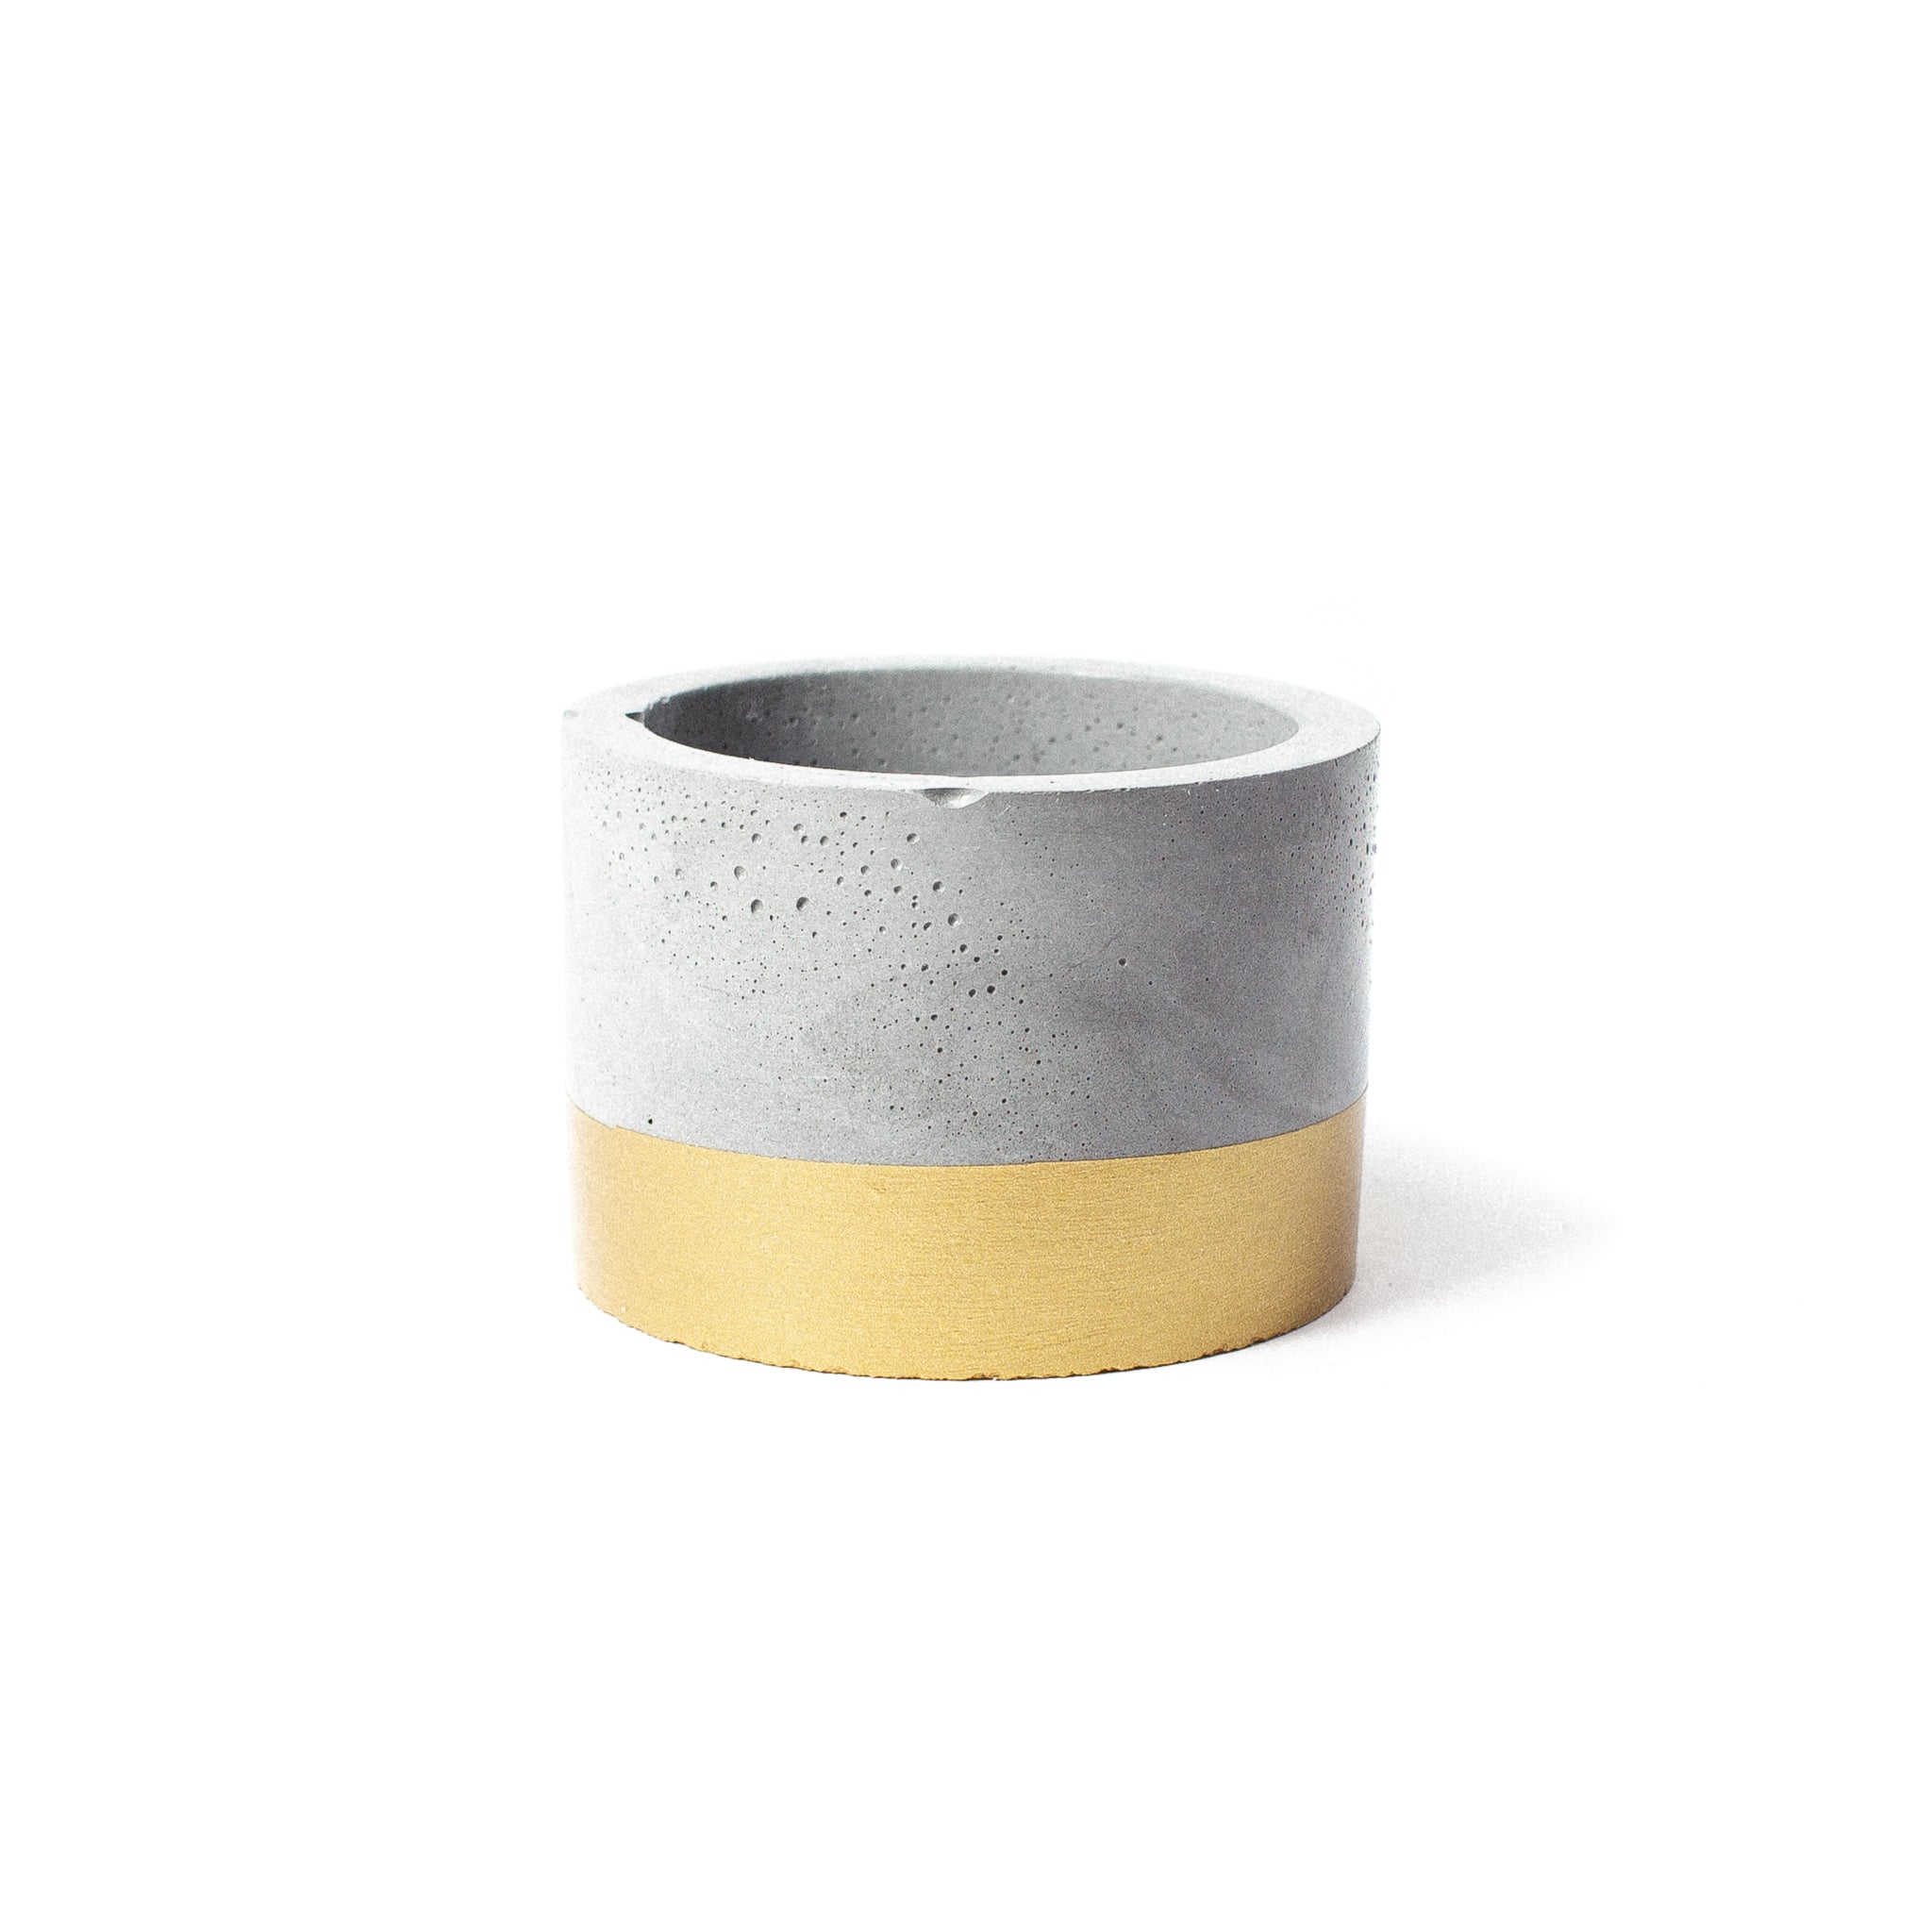 Concrete Planter: Gold Short Cylinder